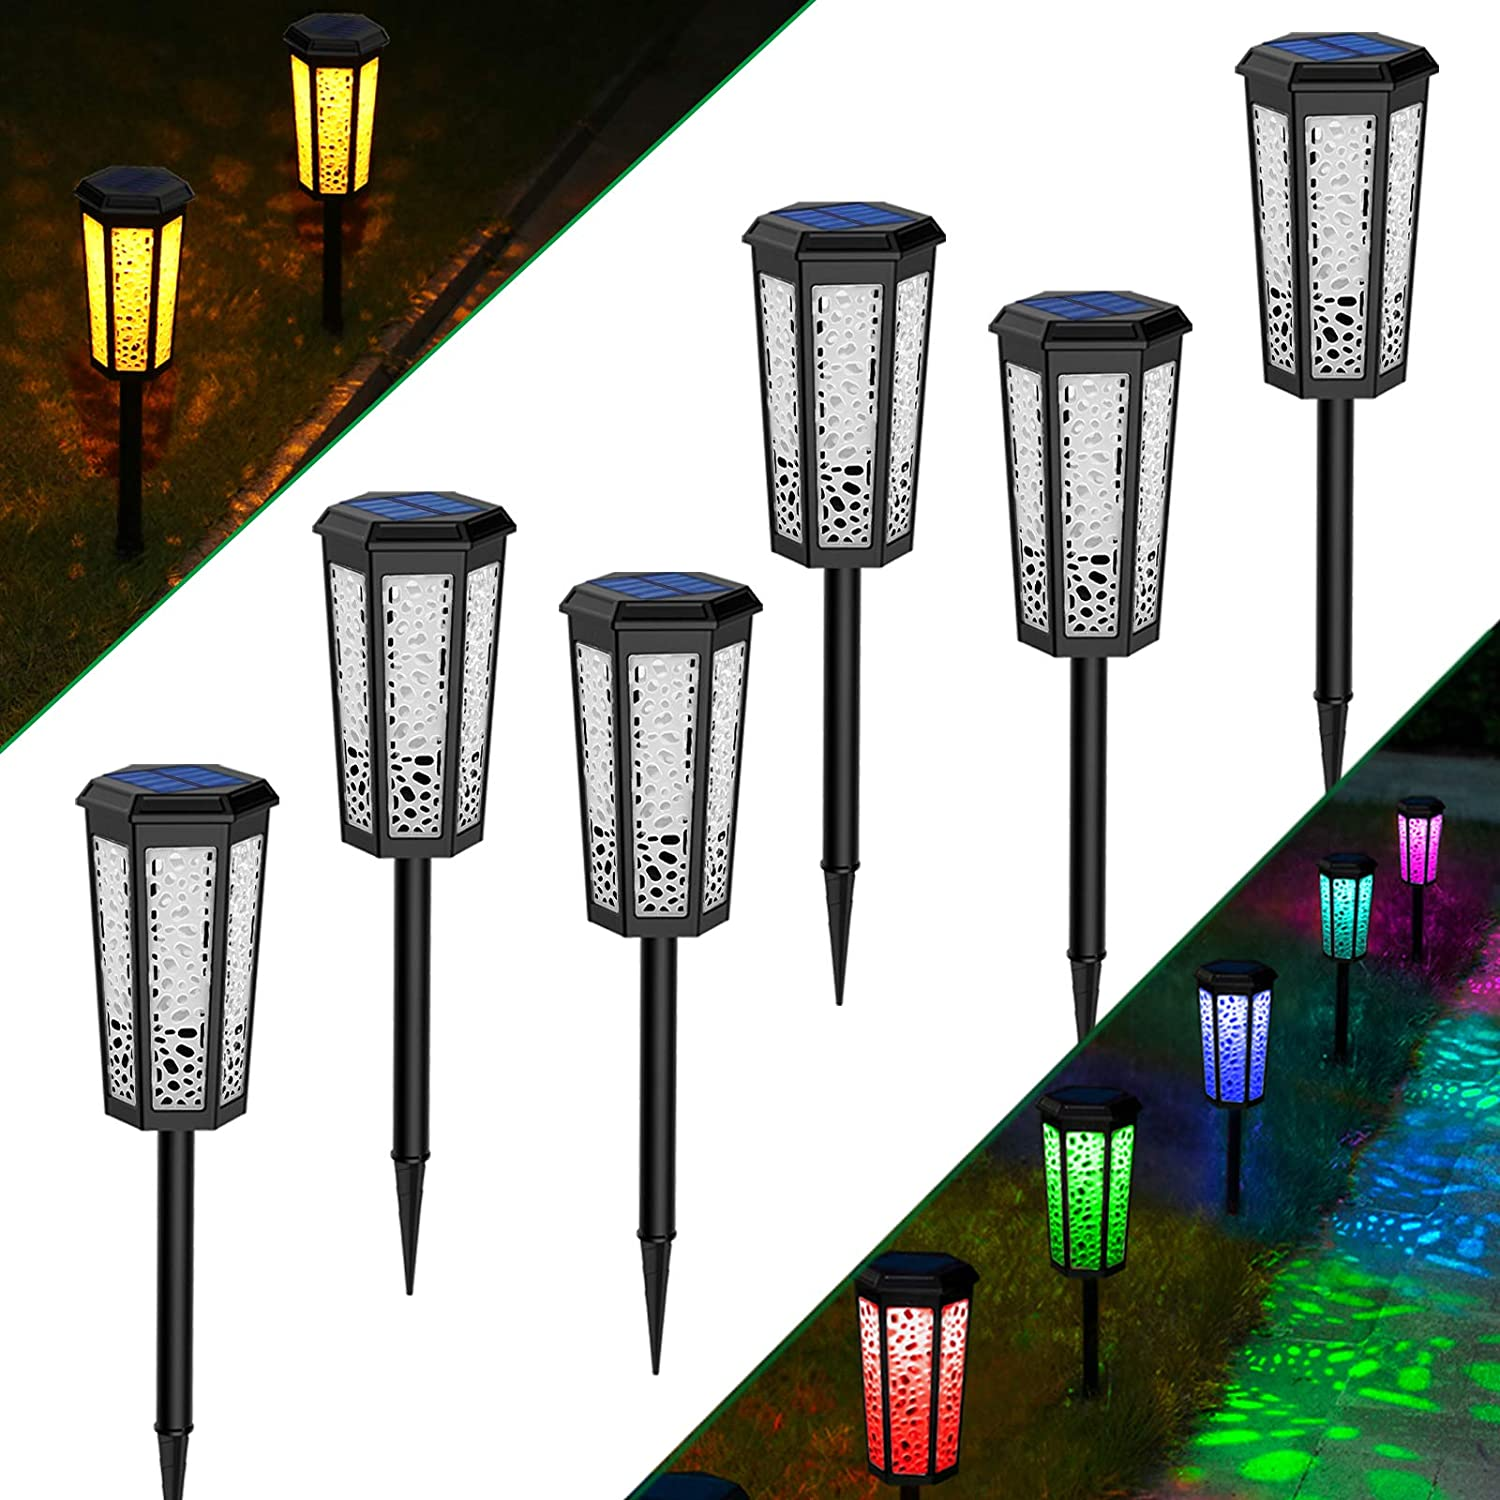 Solar Powered Pathway Lights,2 Modes [Amber White & RBG Changing] Waterproof Solar Landscape Light Outdoor Garden Decorative Led Lighting for Path, Yard, Patio, Driveway, Walkway Lawn Decor 6 Pack